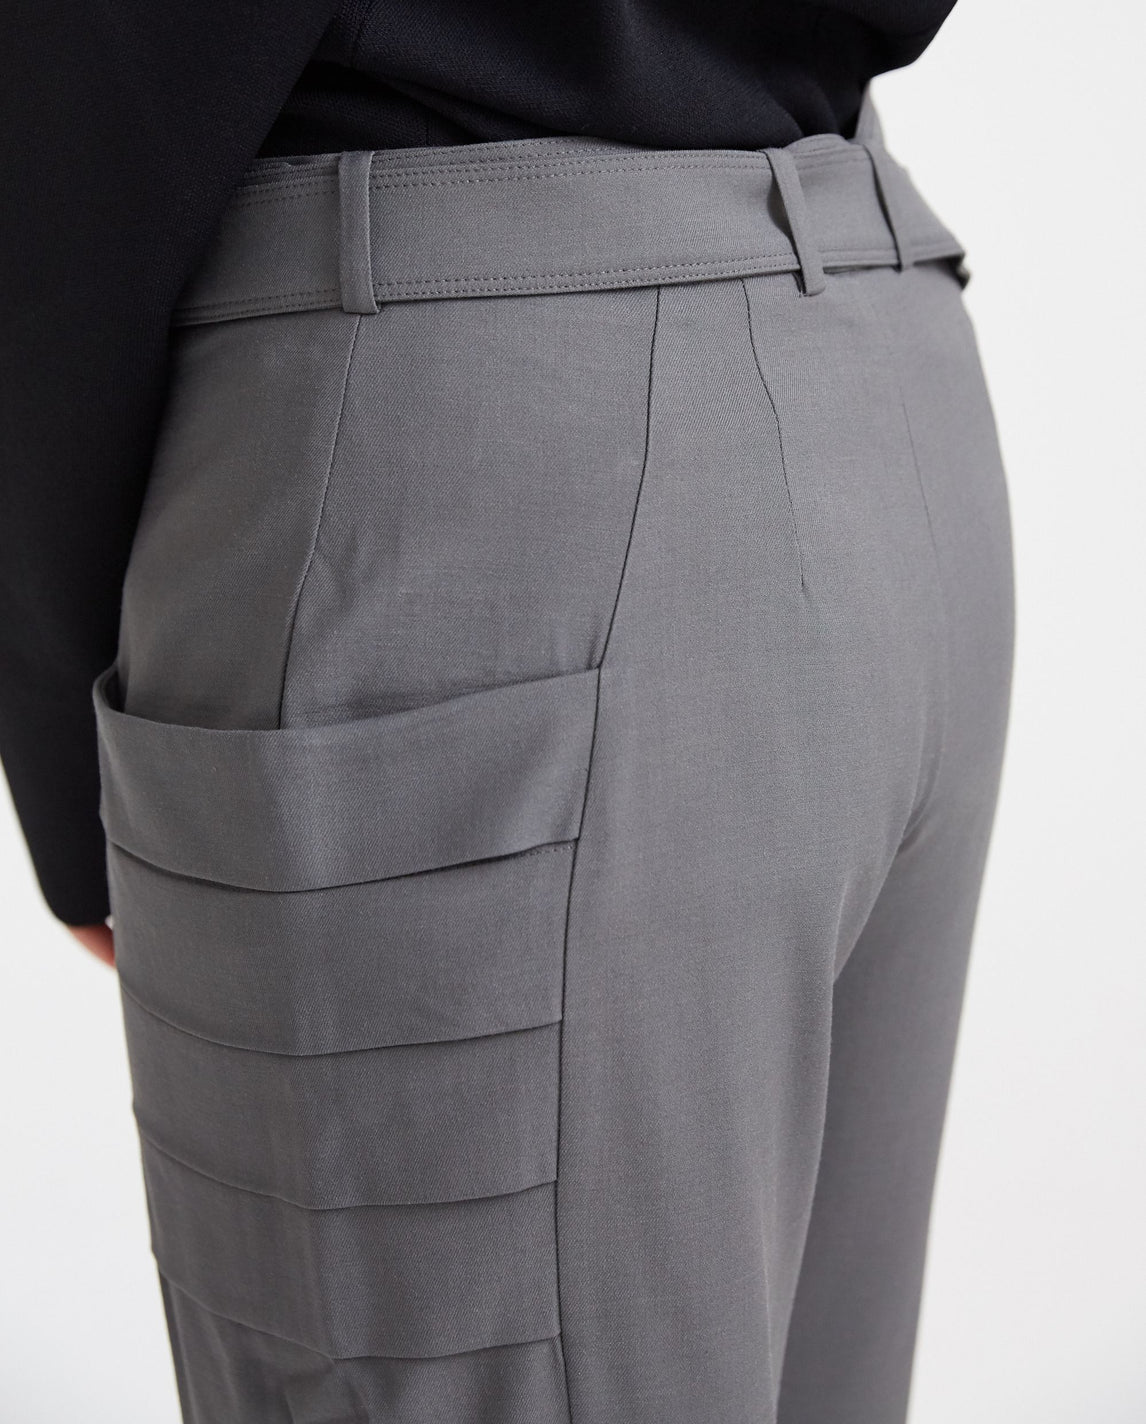 Gill Pocket Trousers - Grey WOMENS VEJAS